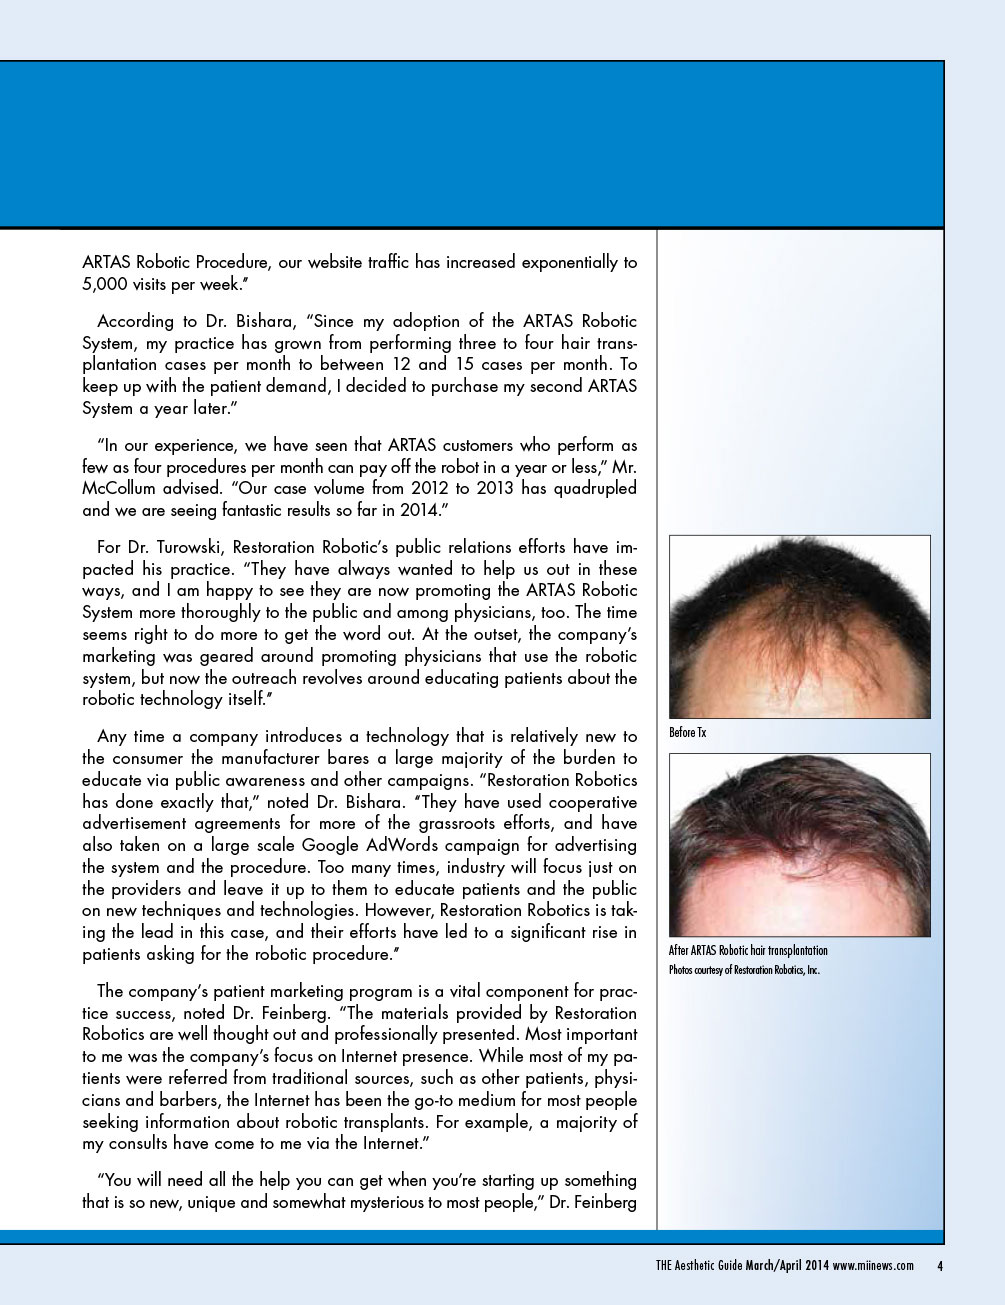 ARTAS Hair Studio and ARTAS Robotic System Signal a Paradigm Shift in Hair Restoration TAG March April 2014 4